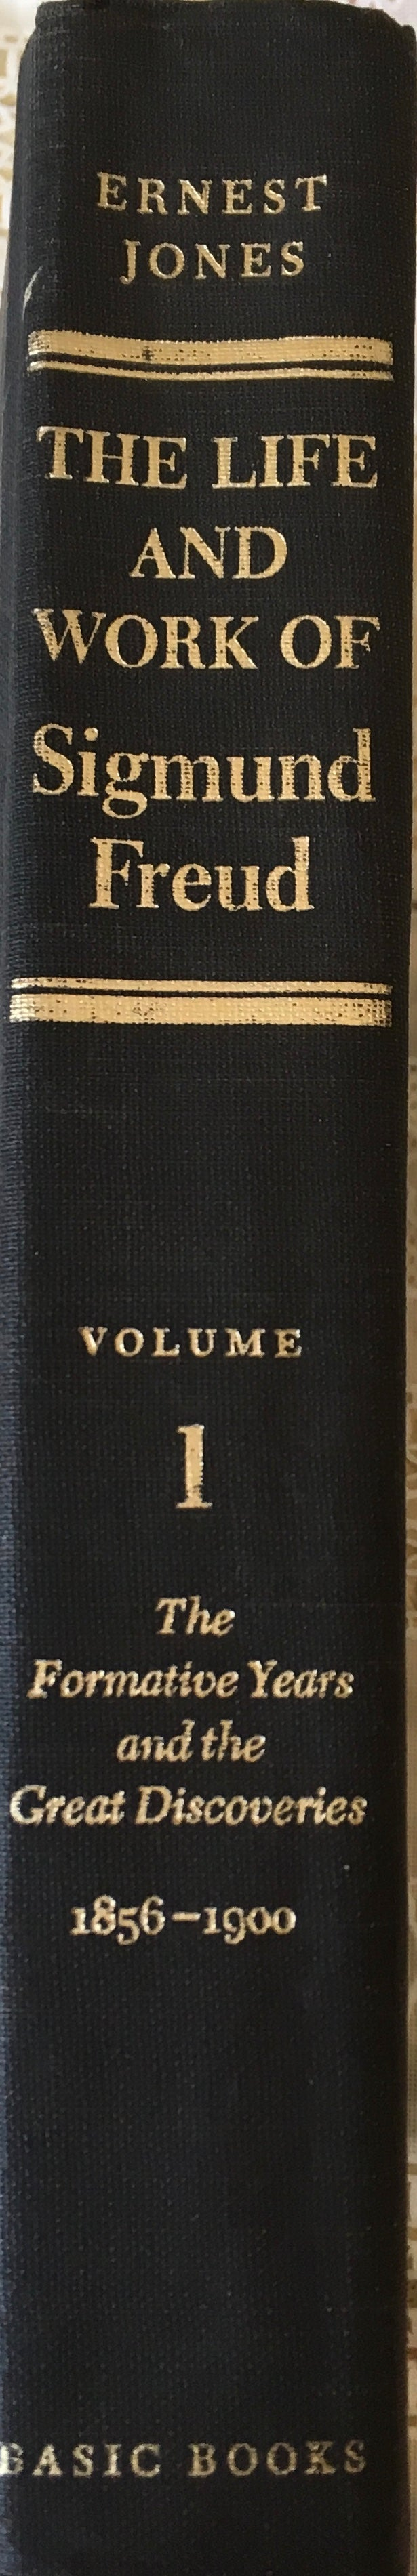 Rare Book, 1856-1900, Freud, Sigmund, The Life and Work, Vol 1.